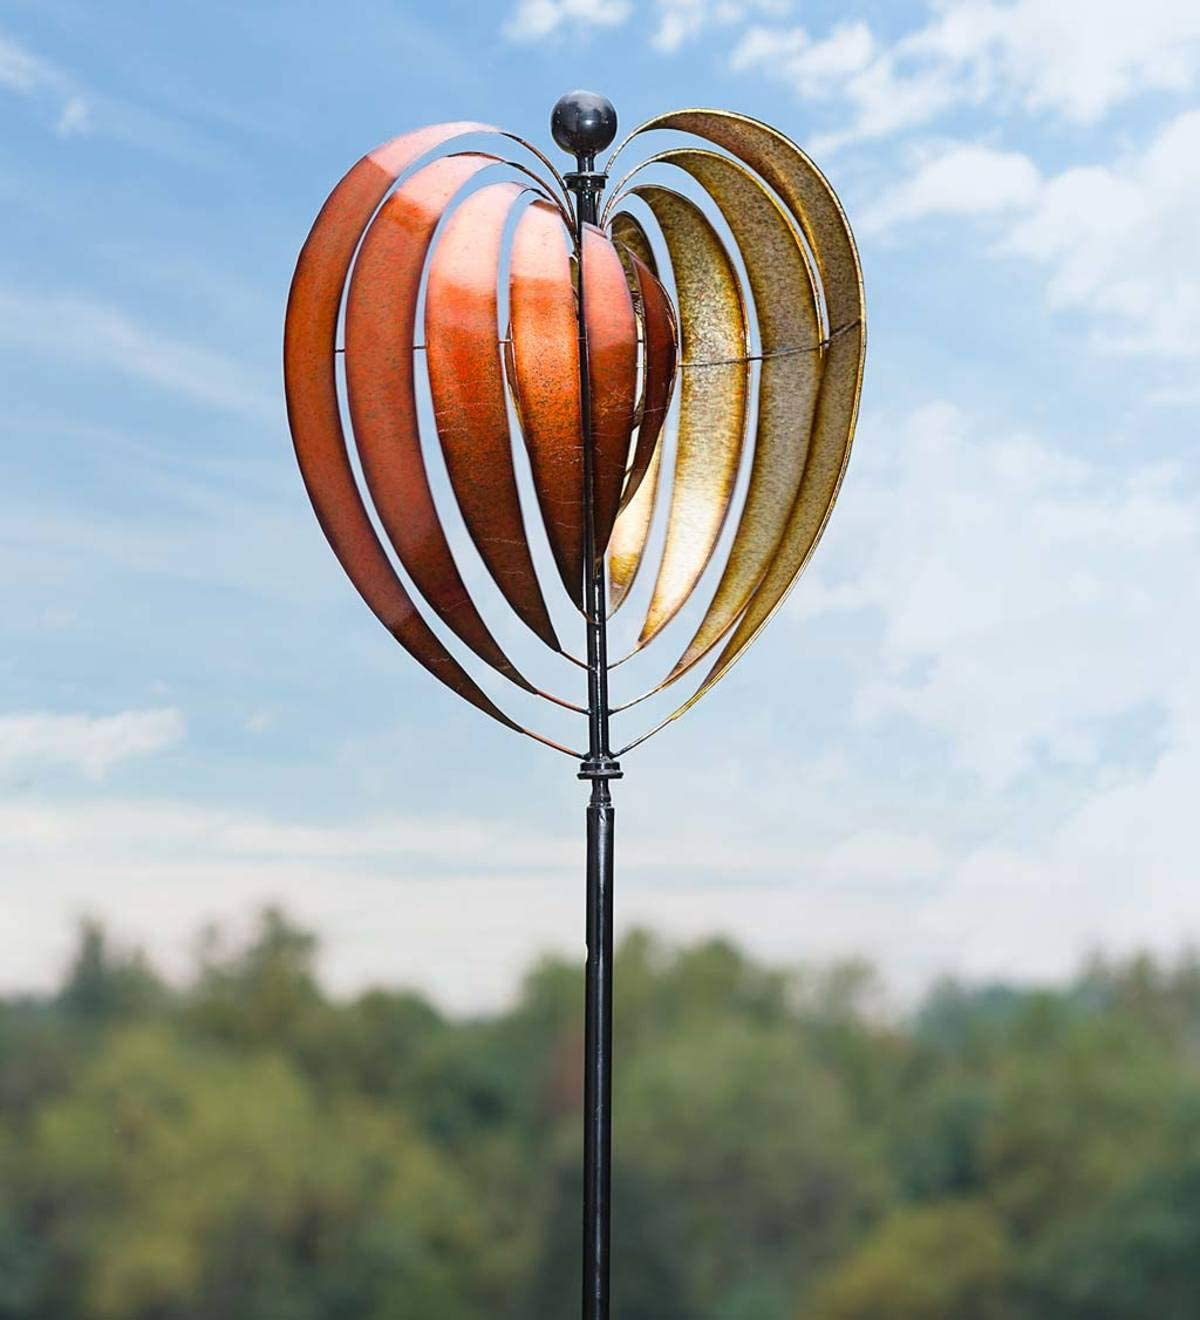 Oversized Tall Heart-Shaped Ribbons Painted Metal Wind Spinner with Finial and Ground-Mount Stand for Yard, Garden and Landscape, 20